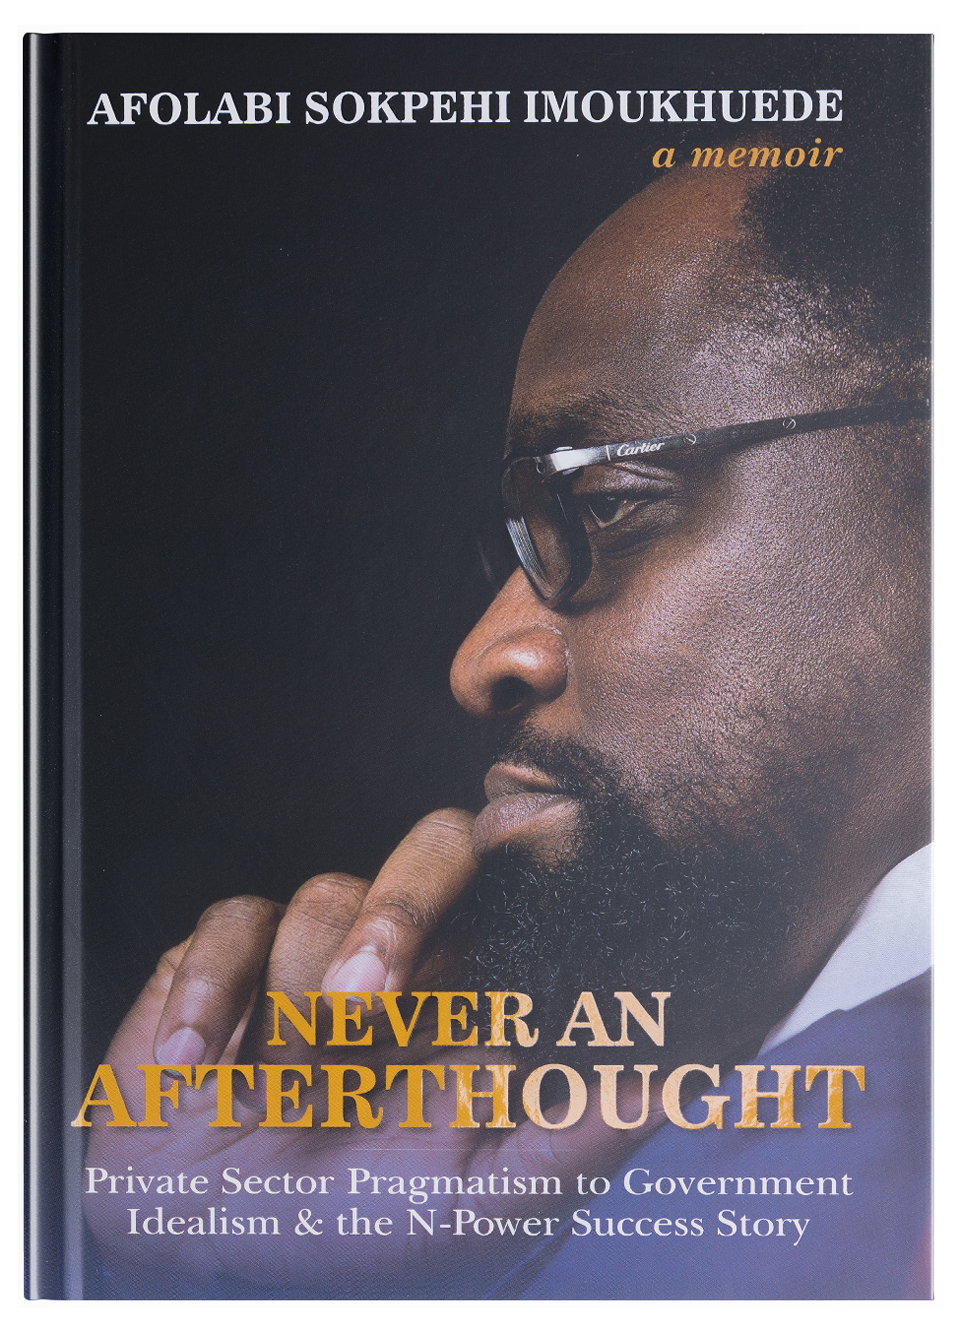 Never an Afterthought by Afolabi Sokpehi Imoukhuede book cover